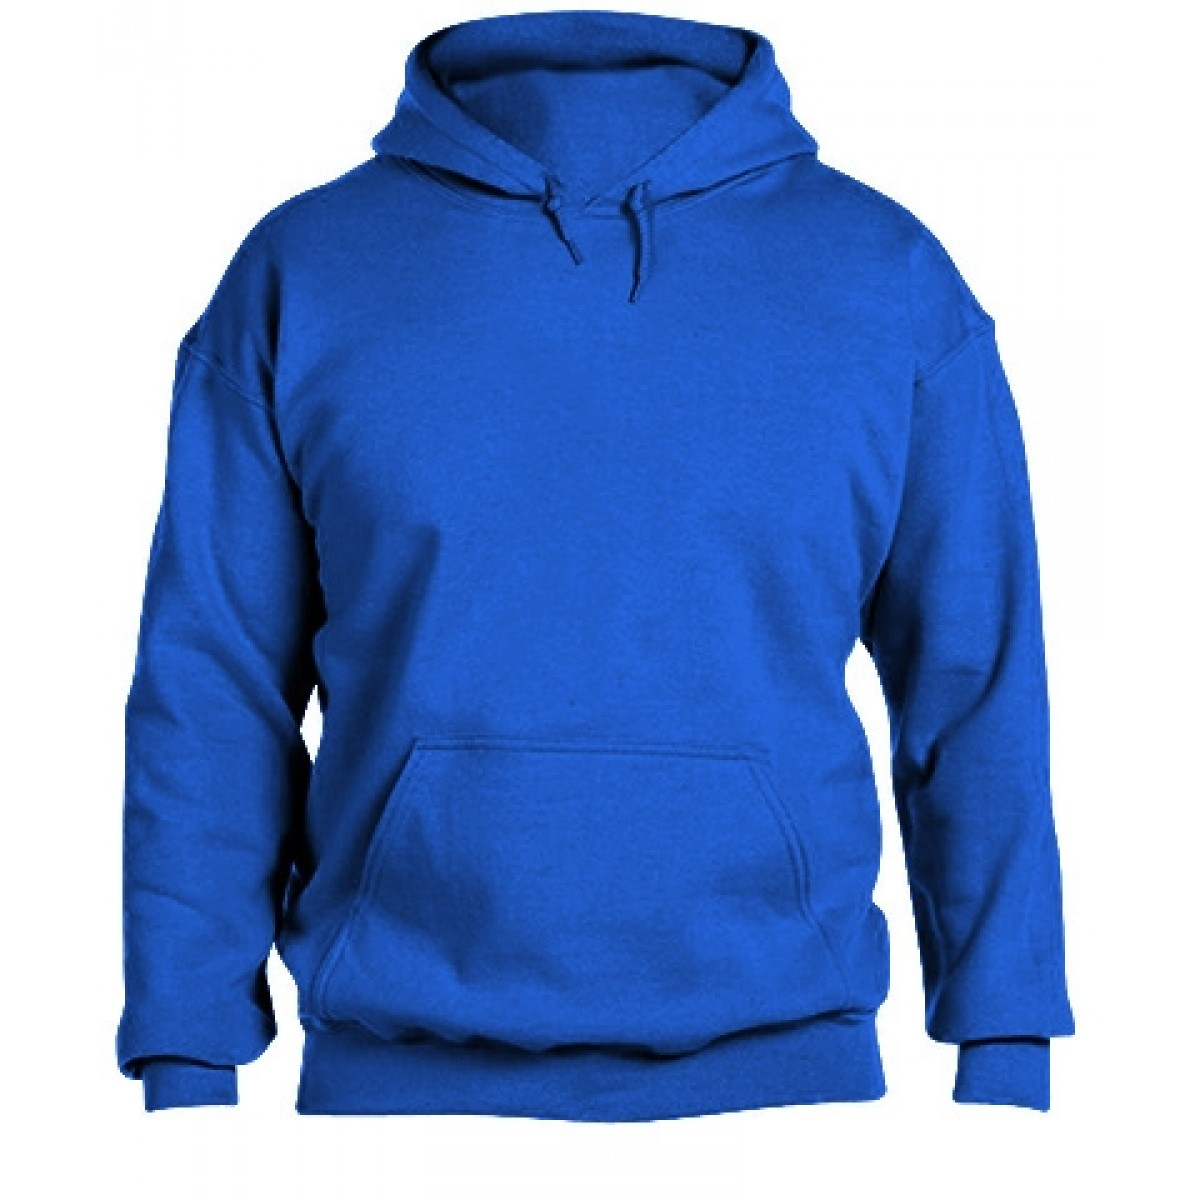 Solid Hooded Sweatshirt  50/50 Heavy Blend-Royal Blue-3XL